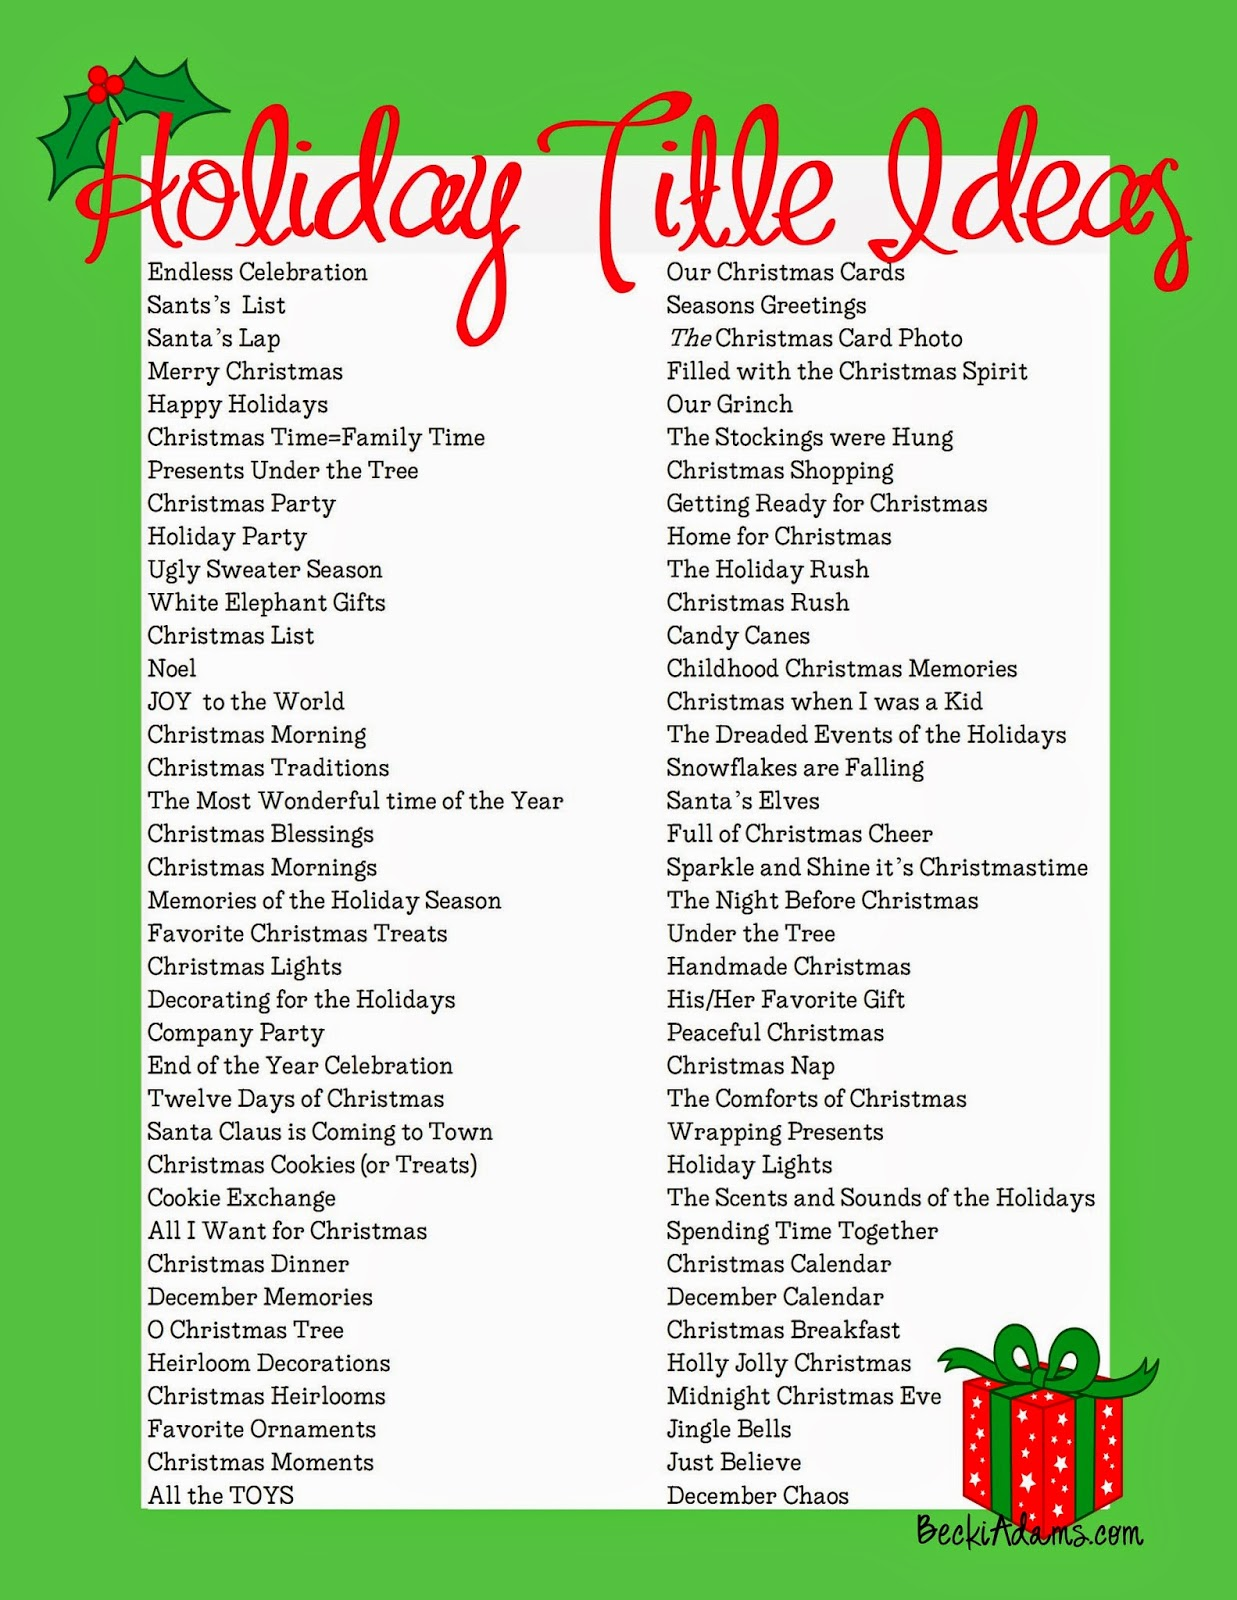 Becki Adams 76 Holiday Page Title Ideas